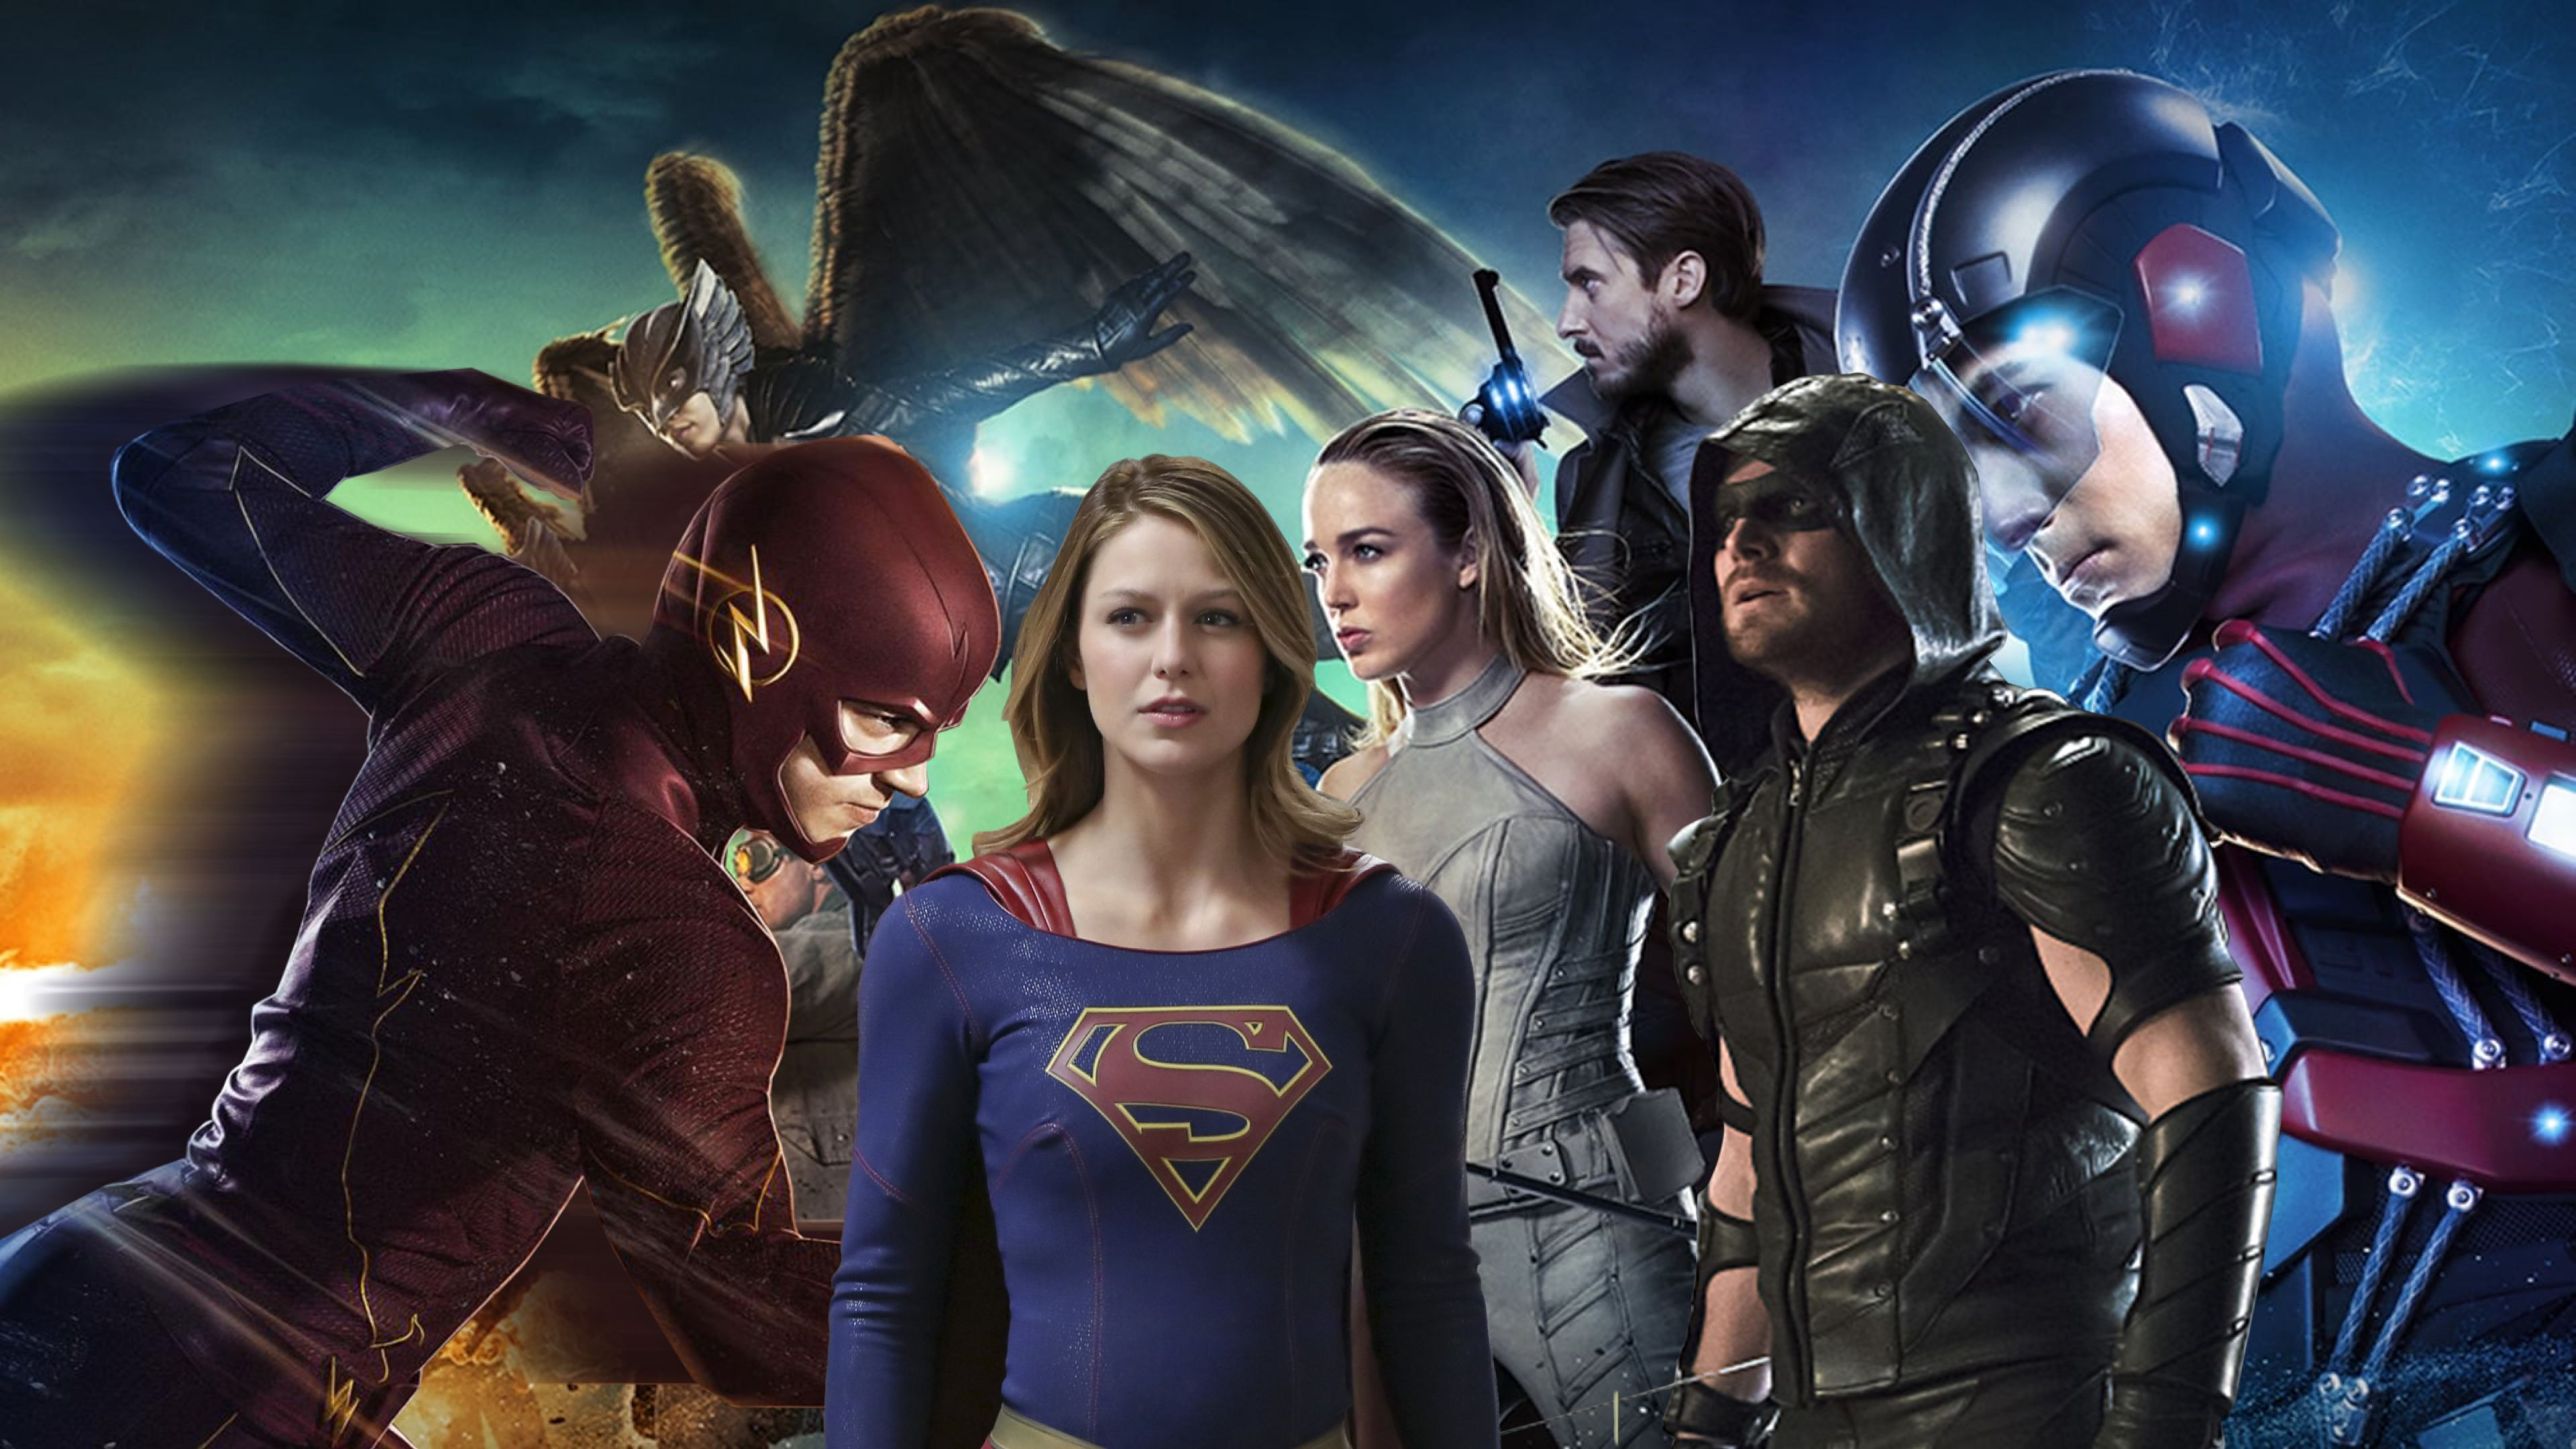 Guía de crossovers Arrow, The Flash, Legends of tomorrow y Supergirl ACTUALIZADA con los capítulos de esta semana!!